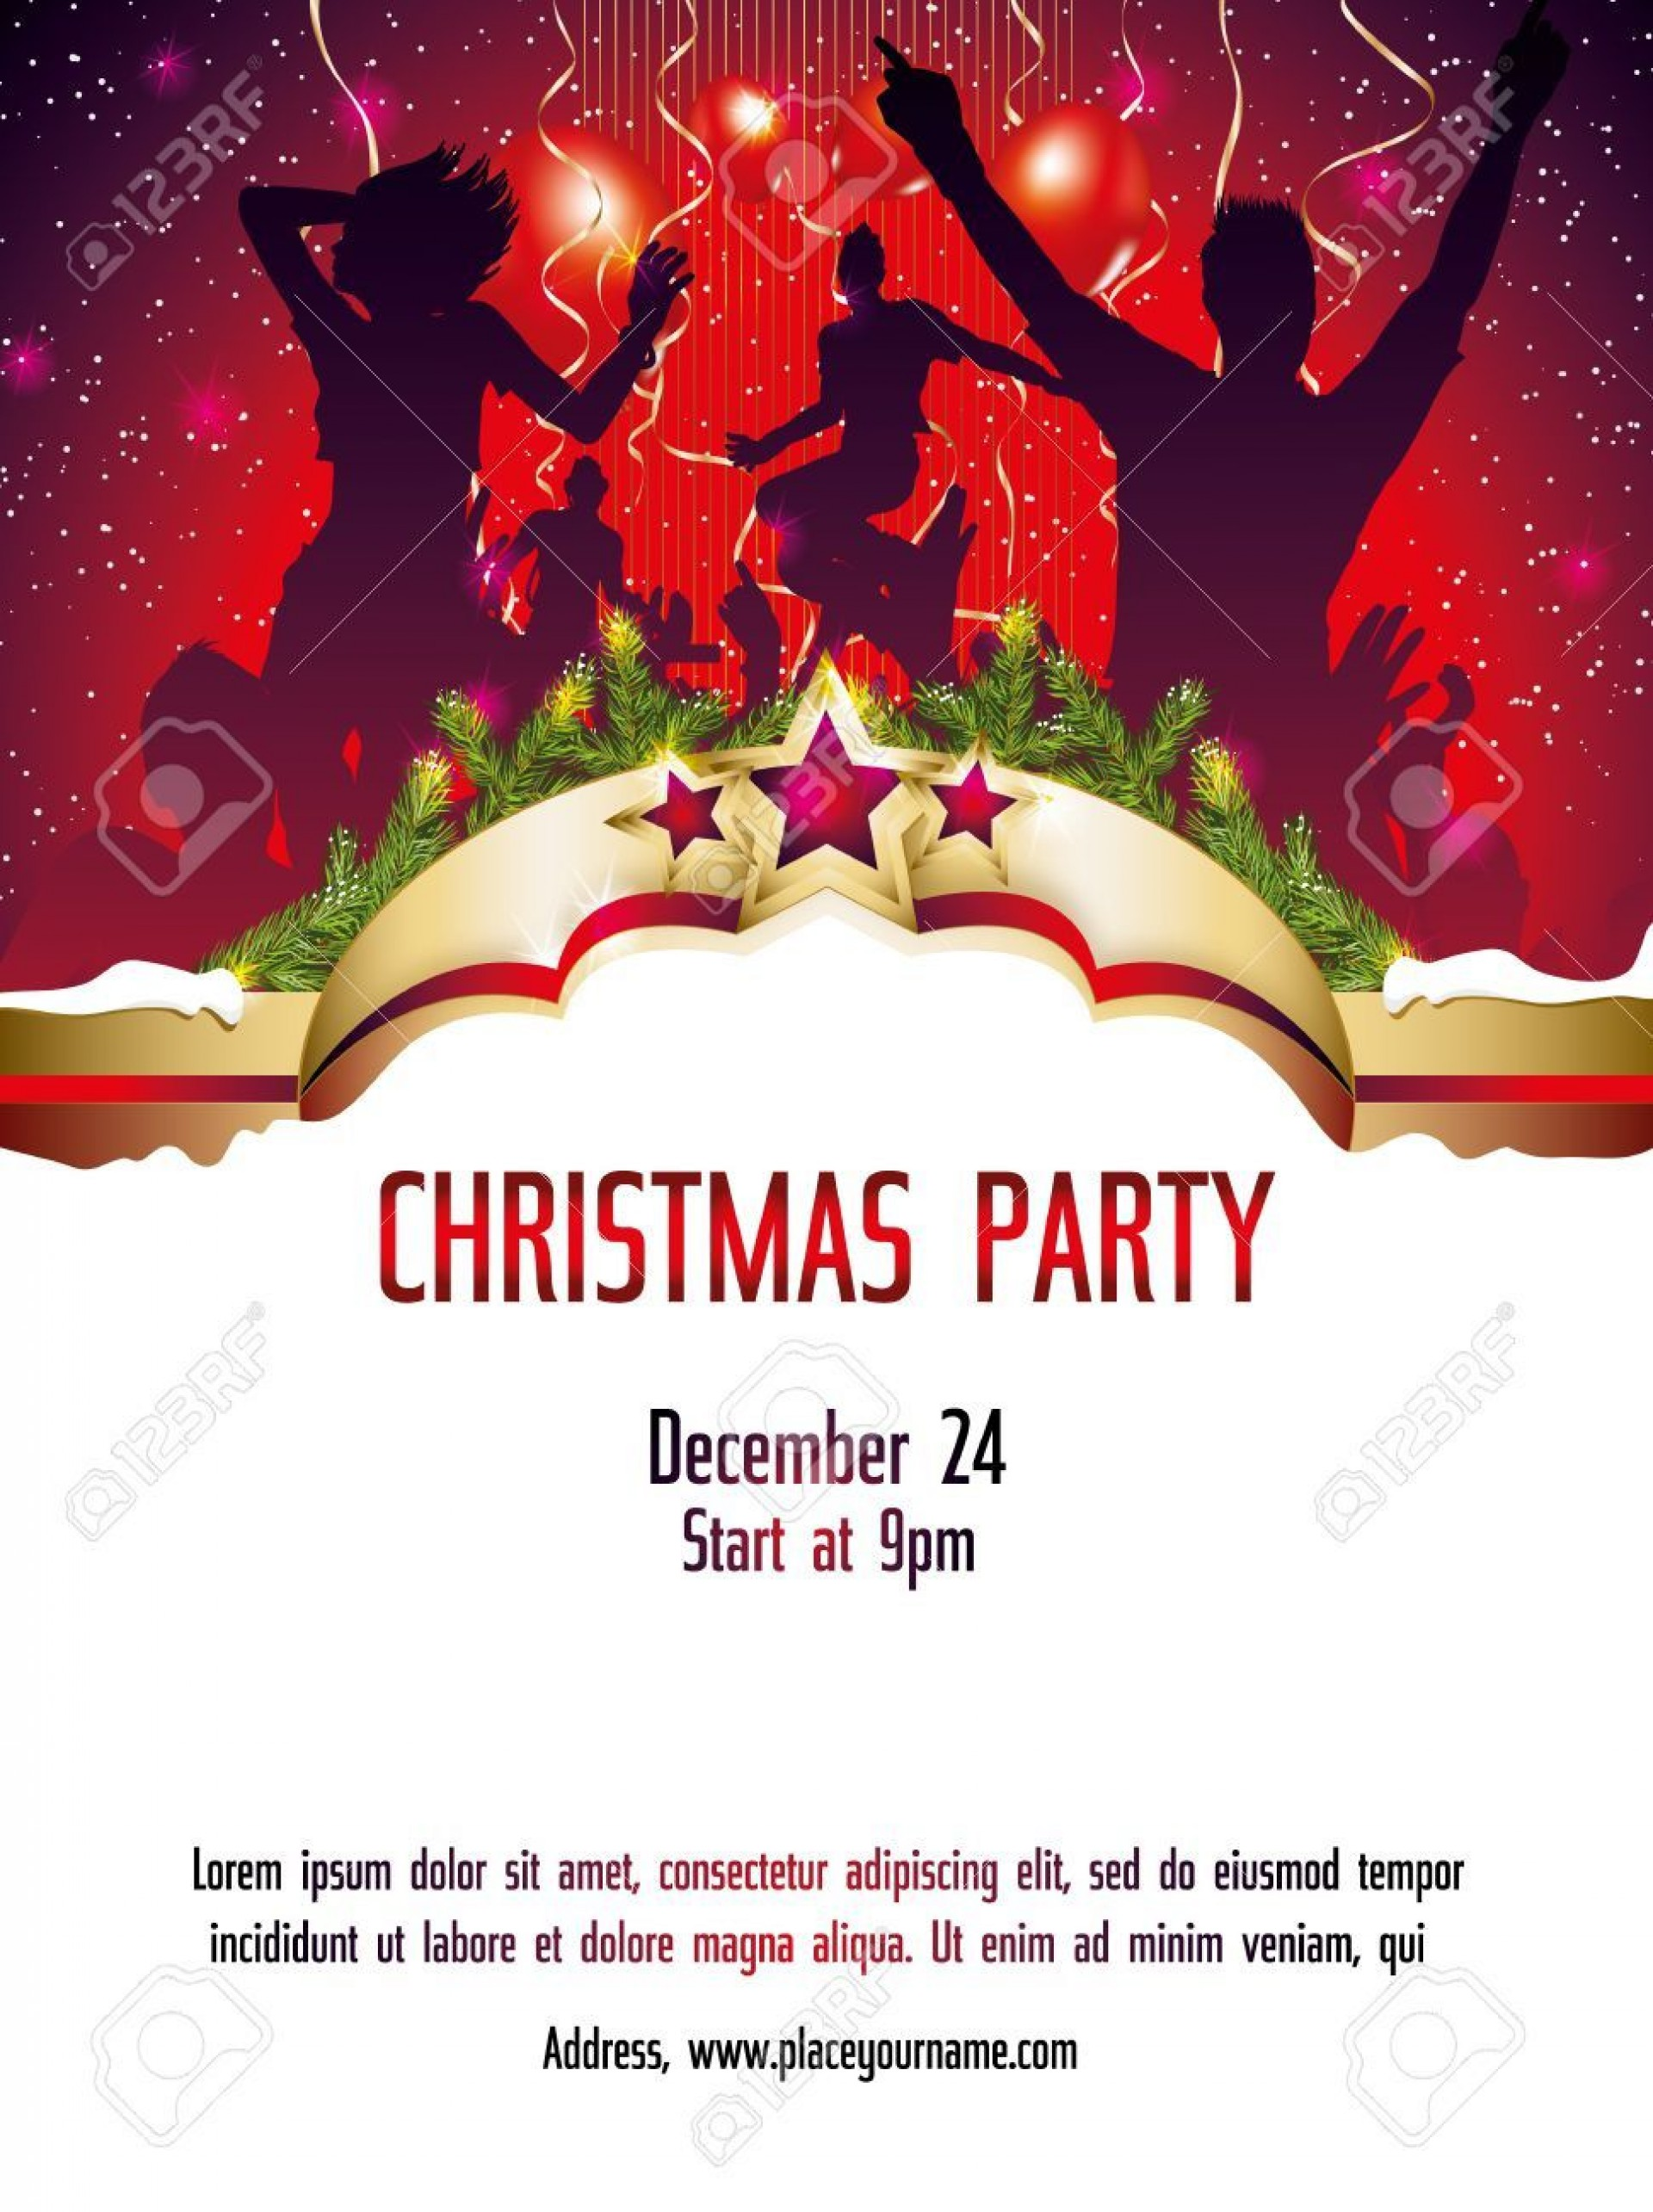 002 Shocking Christma Party Invitation Template High Definition  Funny Free Download Word Card1920